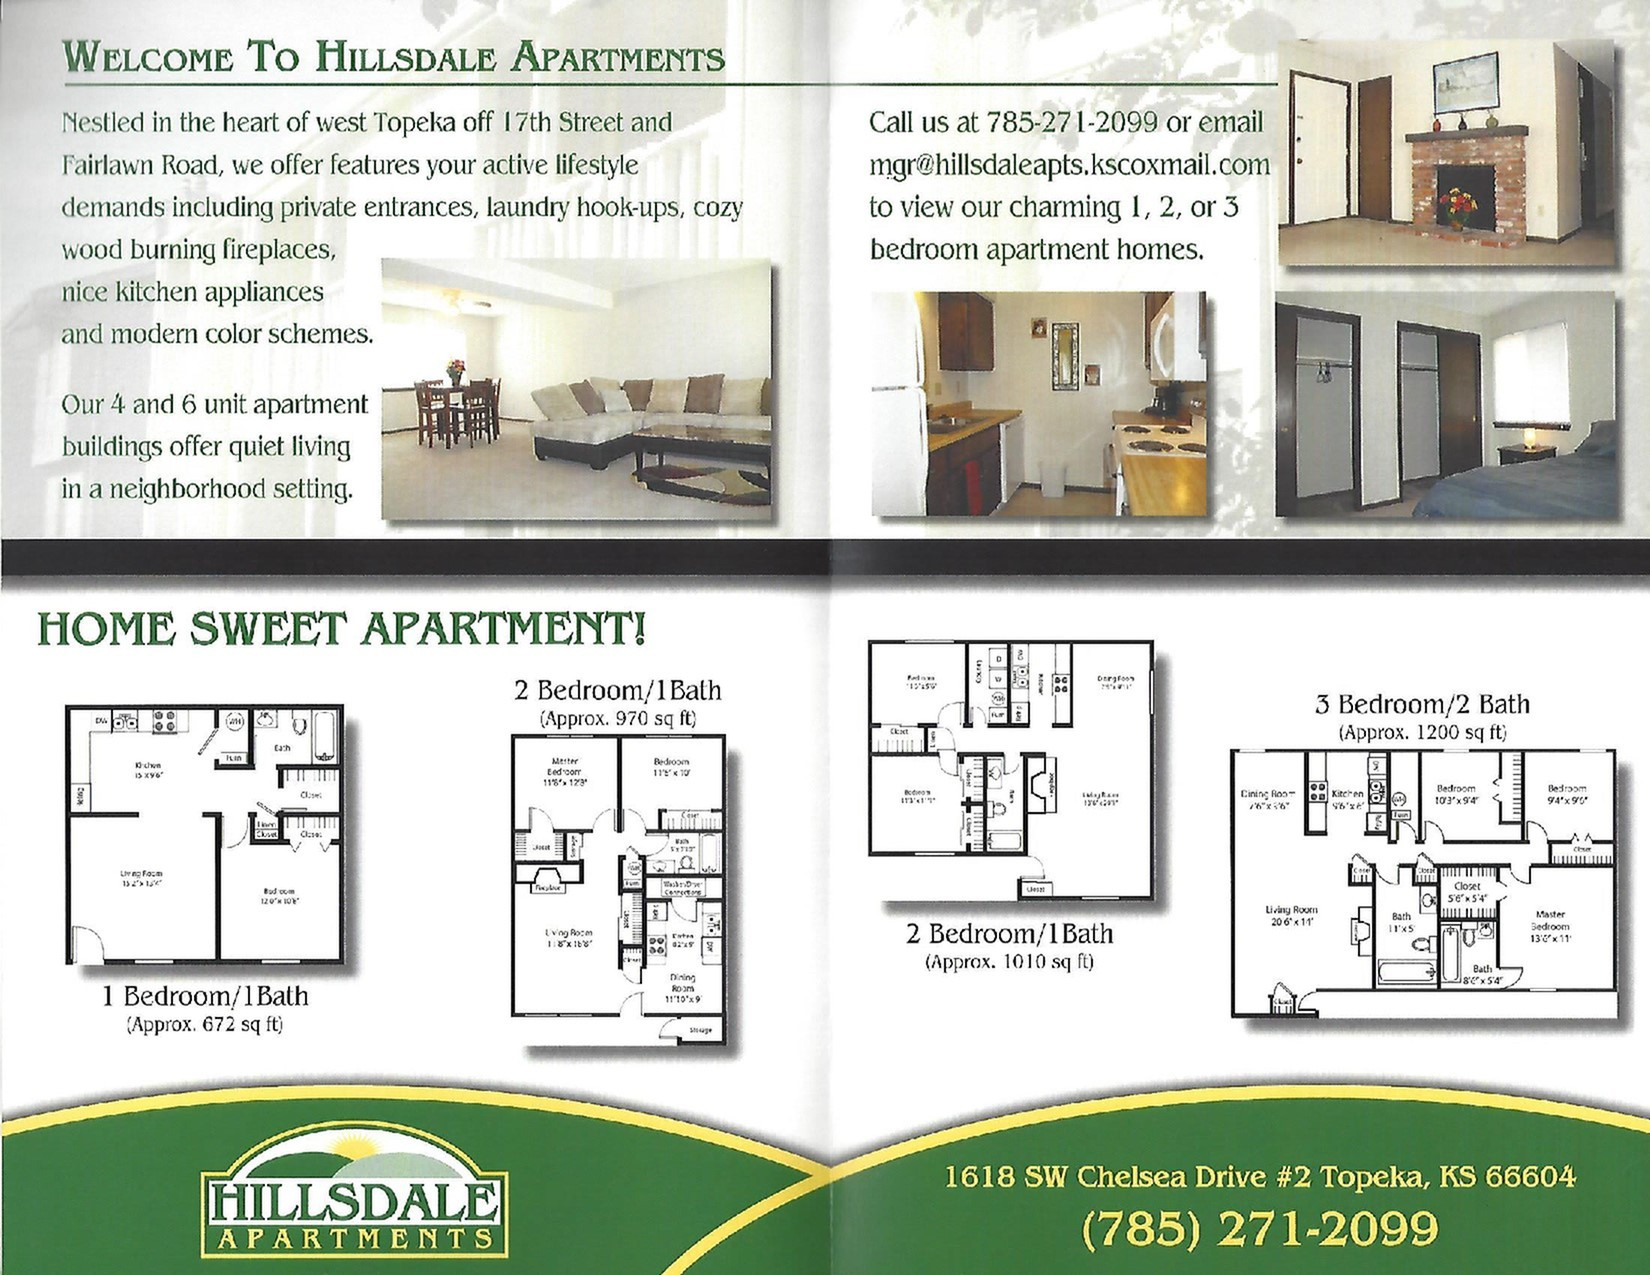 Brochure includes info on 1 bed/1 bath, 2 bed/1 bath, & 3 bed/2 bath